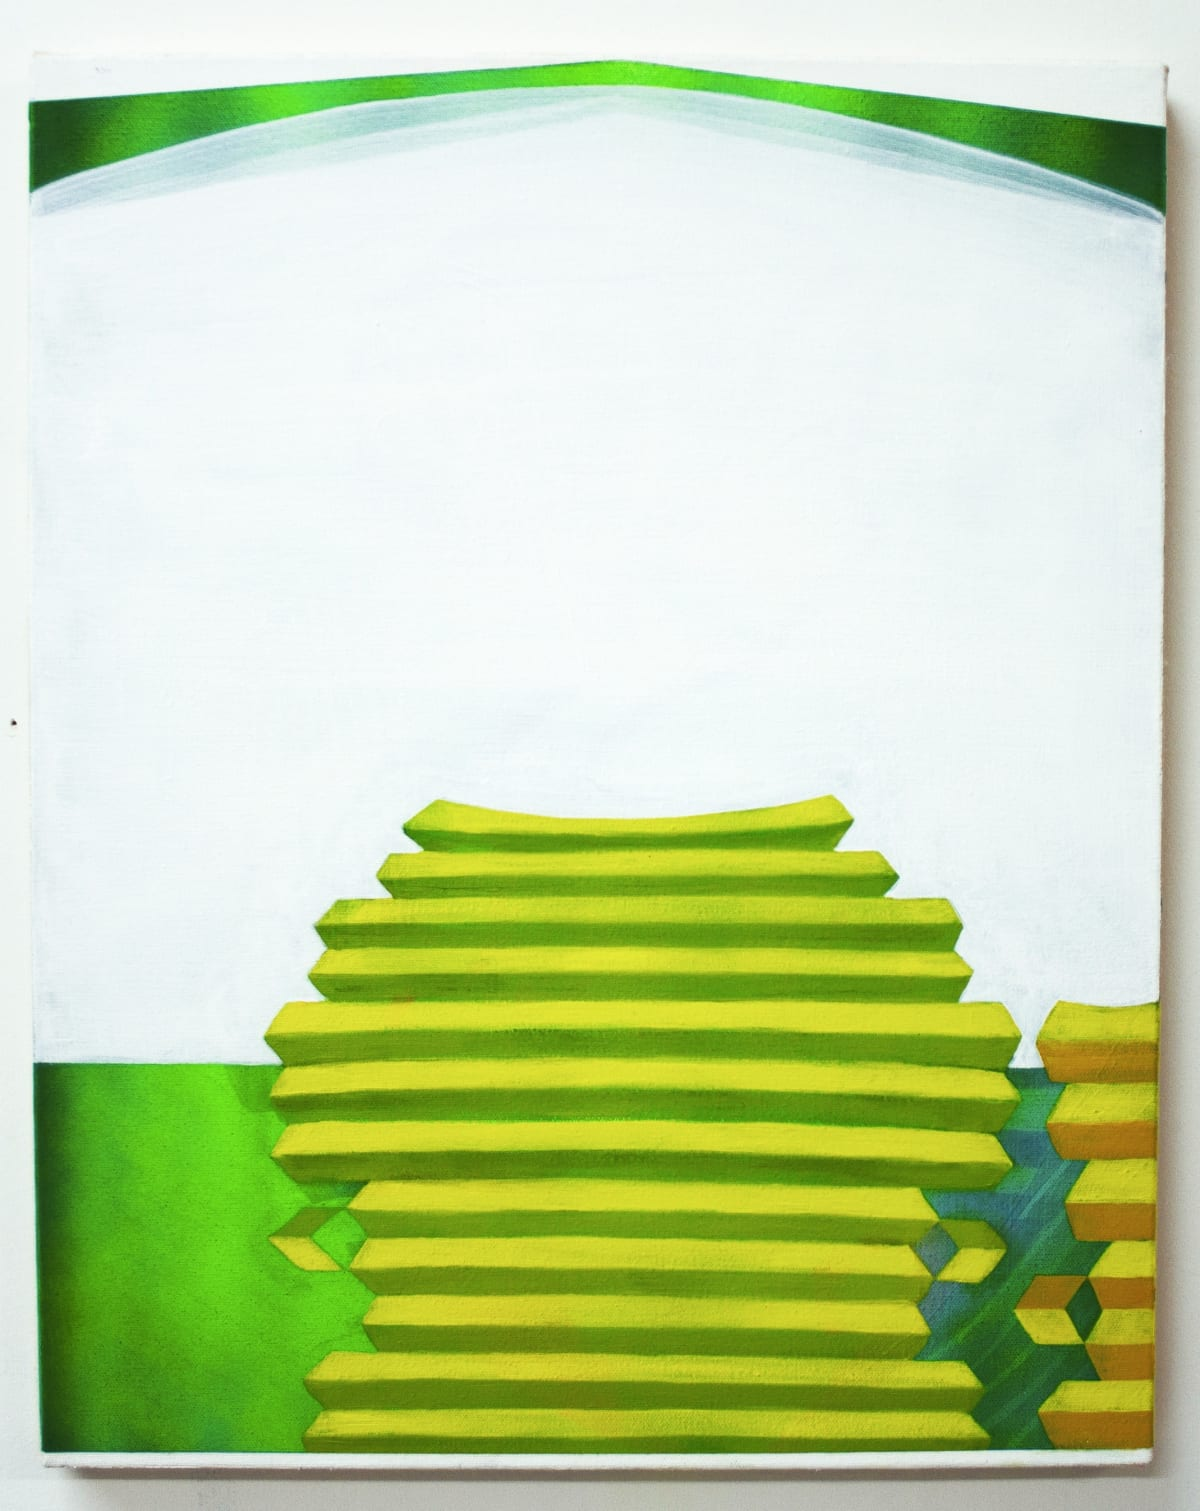 """Catherine Haggarty's """"Frog Tower"""" using fluid acrylic airbrush and oil paint on canvas in various shades of green, white, gray and yellow. The painting as the title suggest is depicting a frog tower and the painted in a green color like an real frog."""